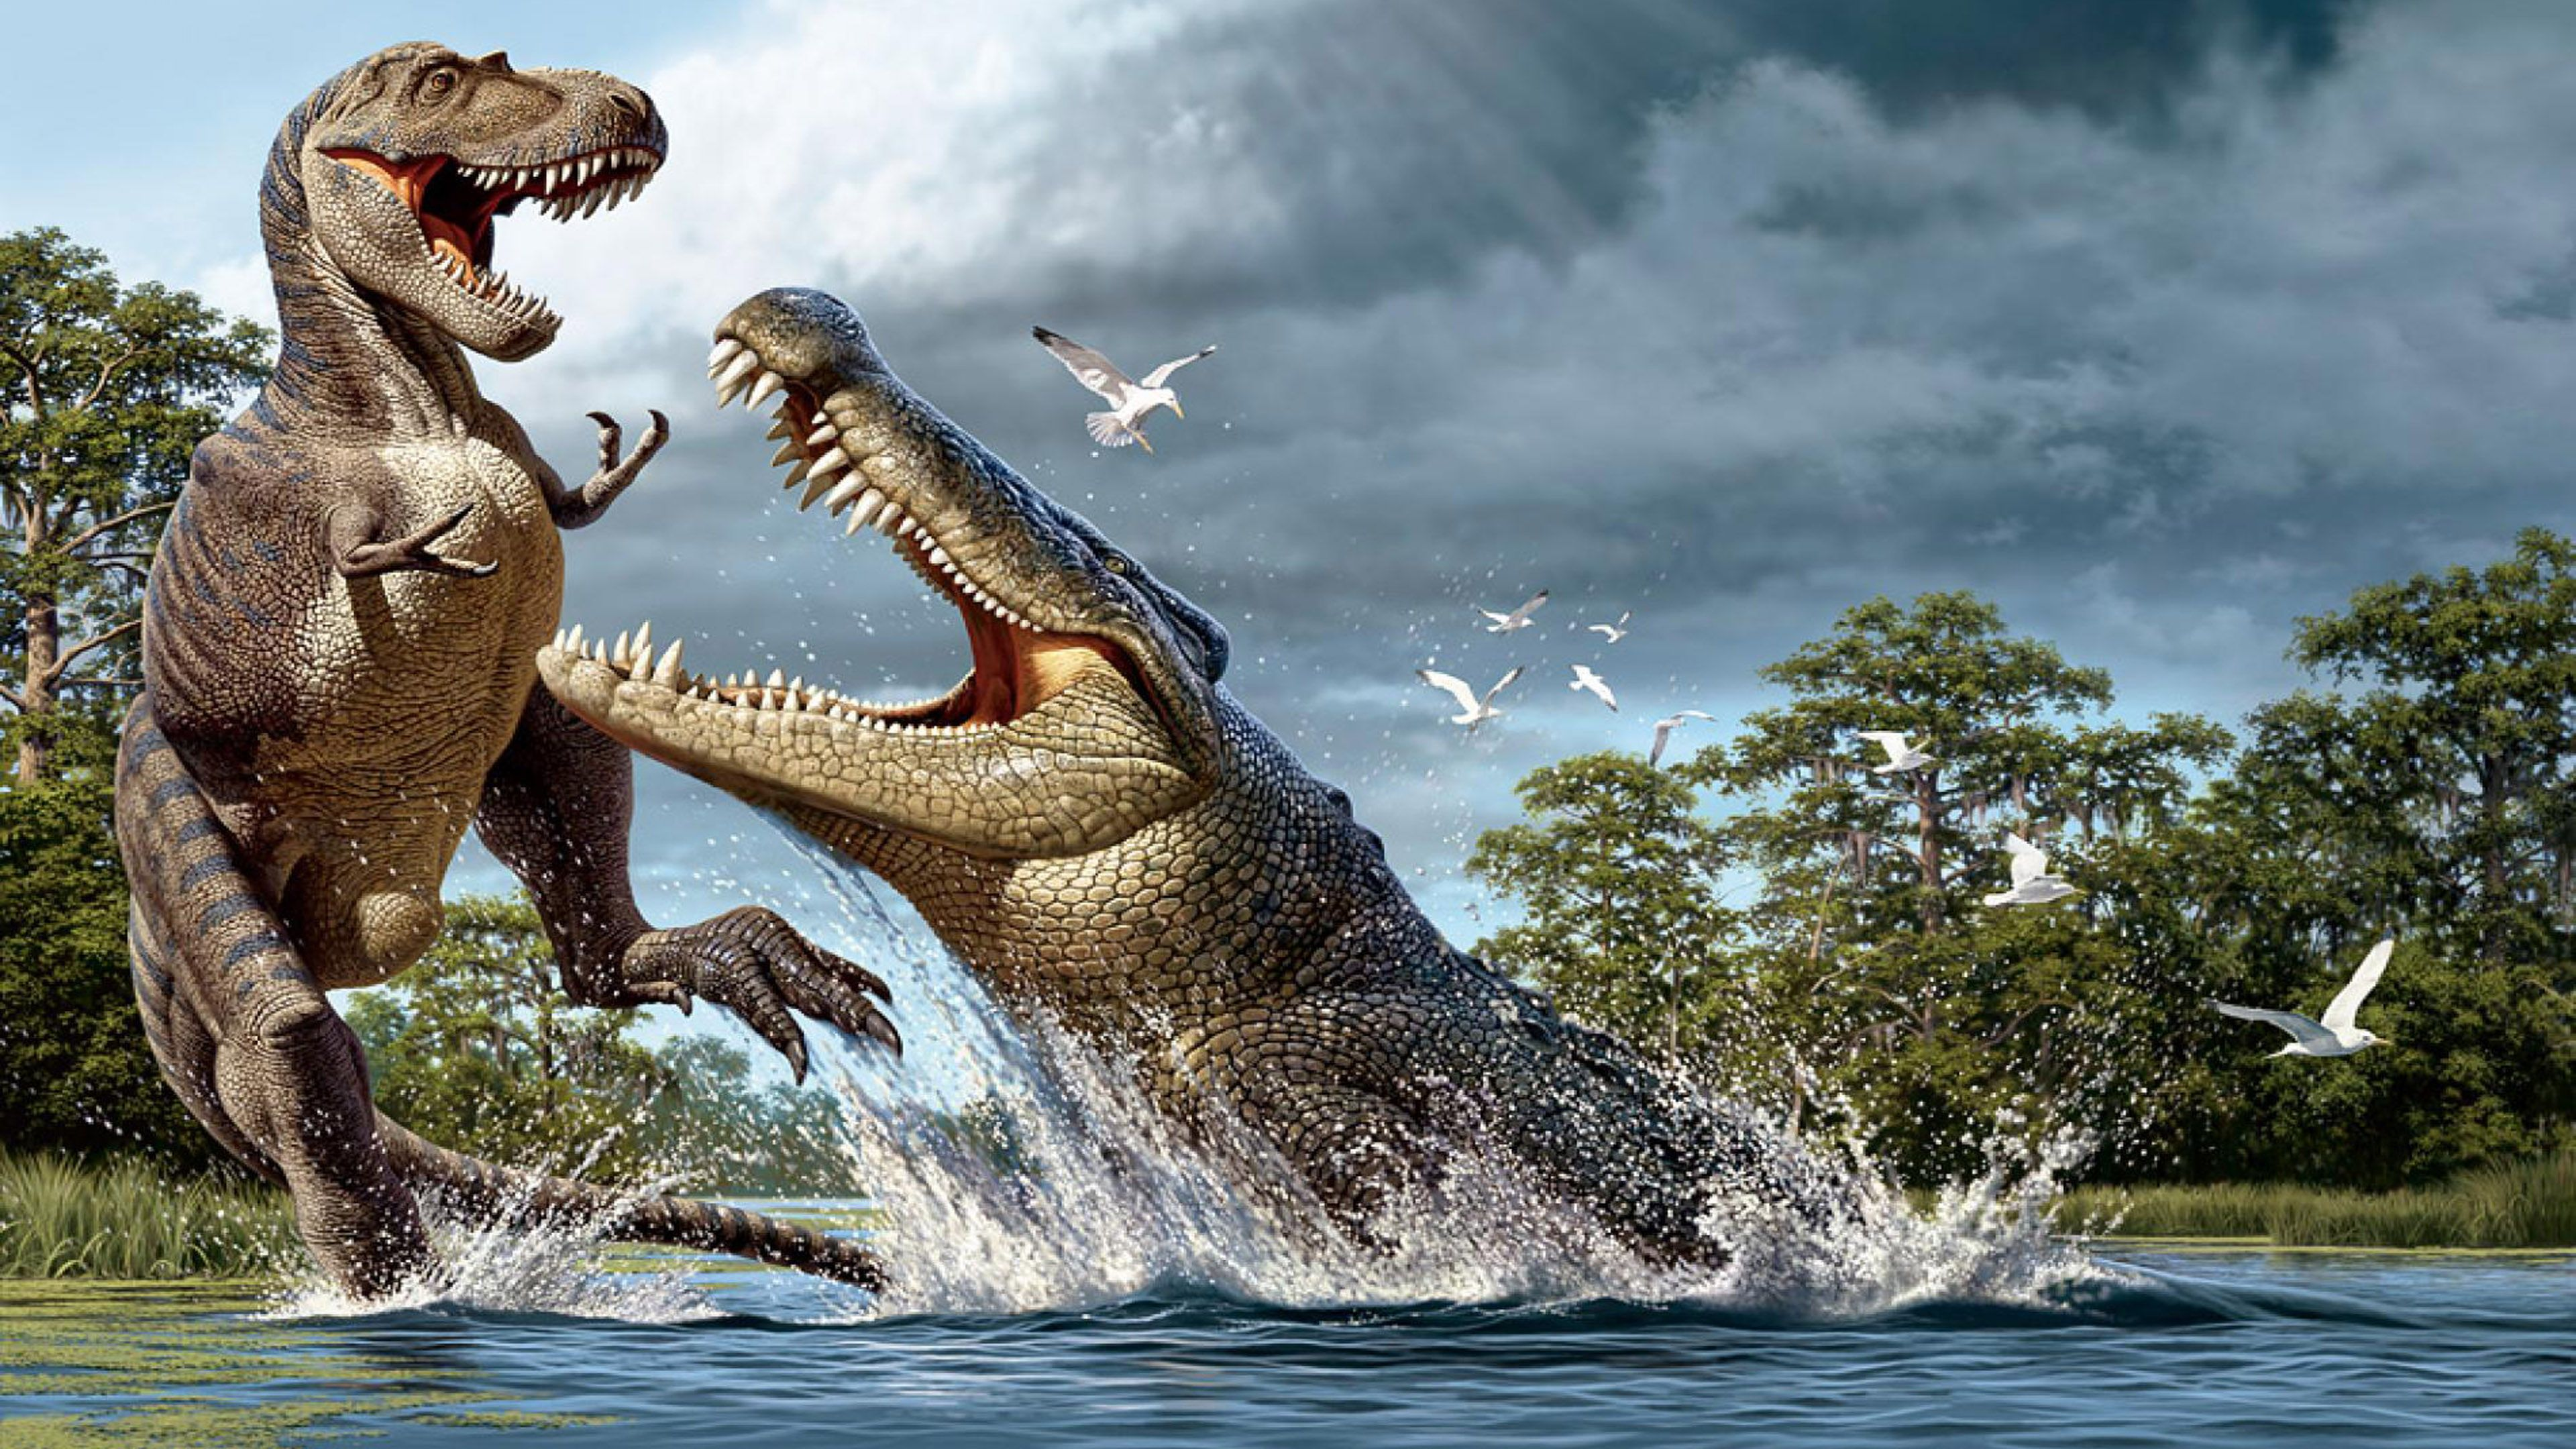 3840x2160px Free Download Hd Wallpaper Animals Pre 200 Million Years Dinosaurs And Crocodile Evolution Ultra Hd Wallpaper Animals Cross Paintings Dinosaur